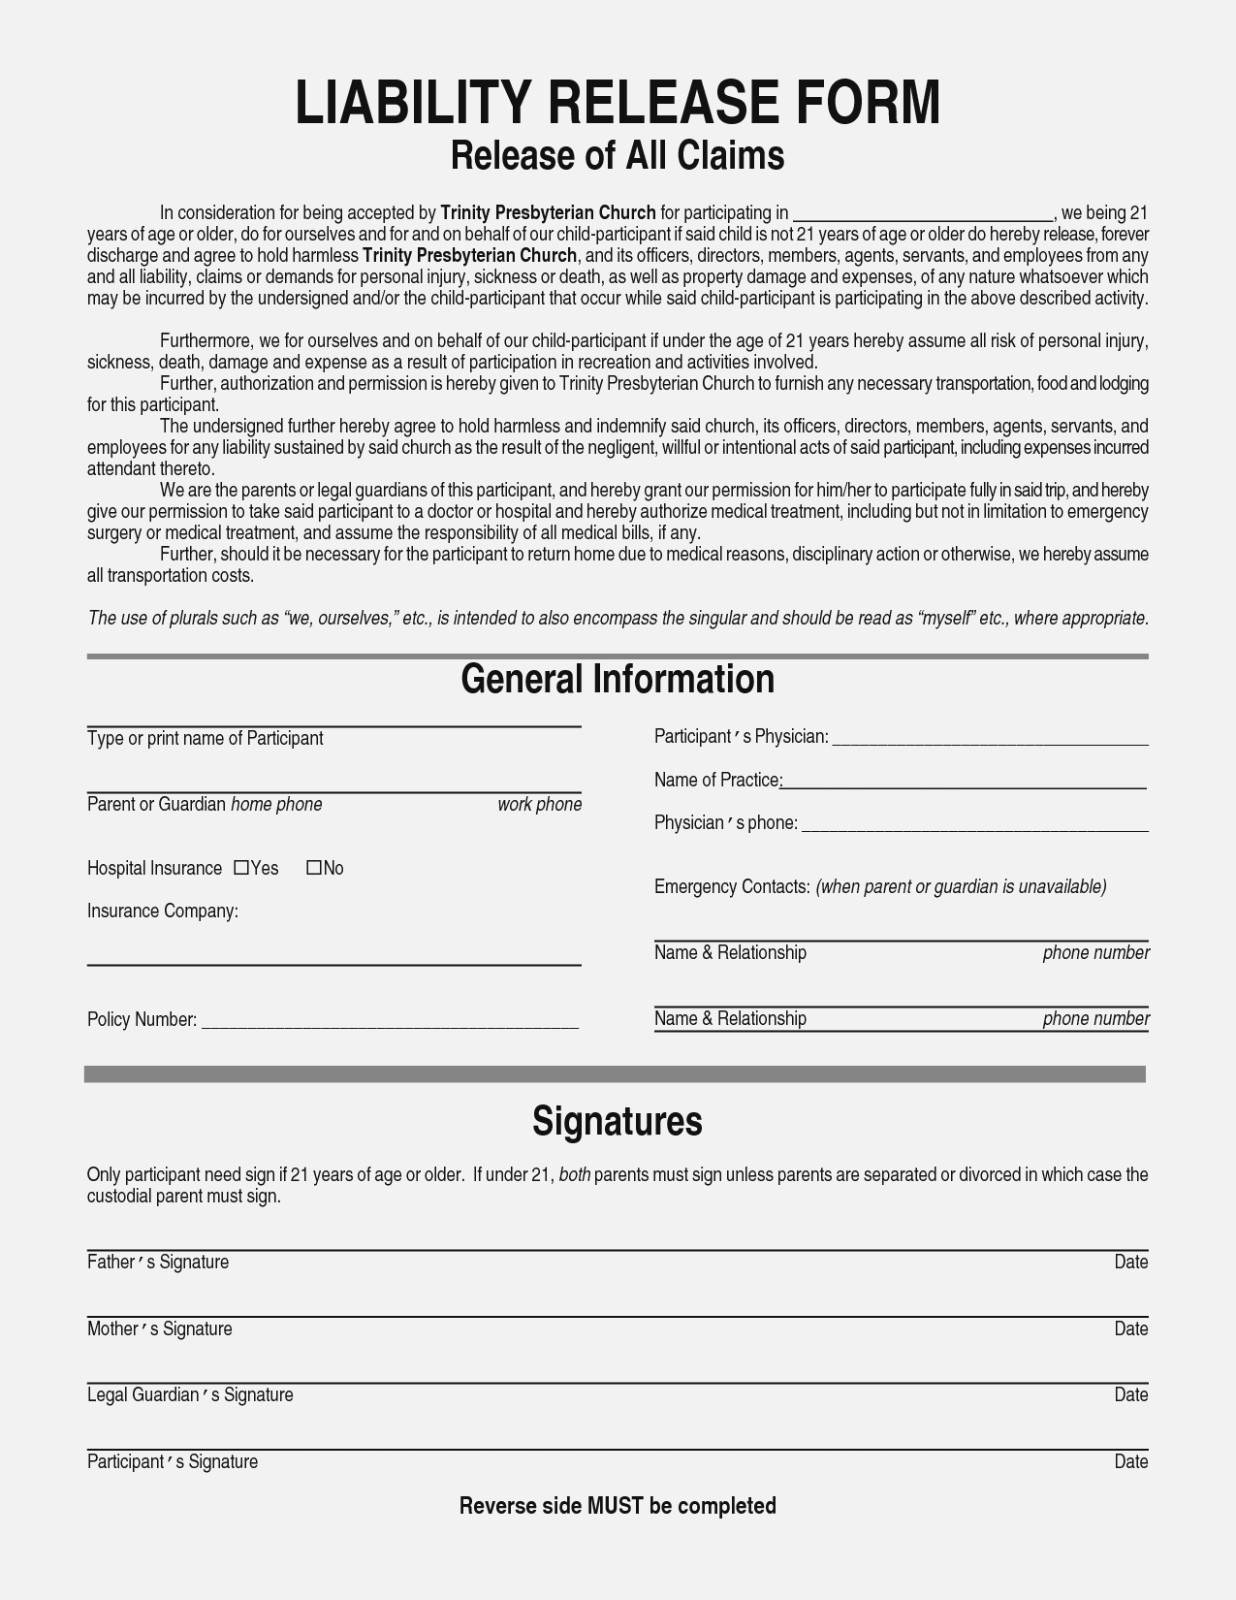 Liability Release Form Template Australia